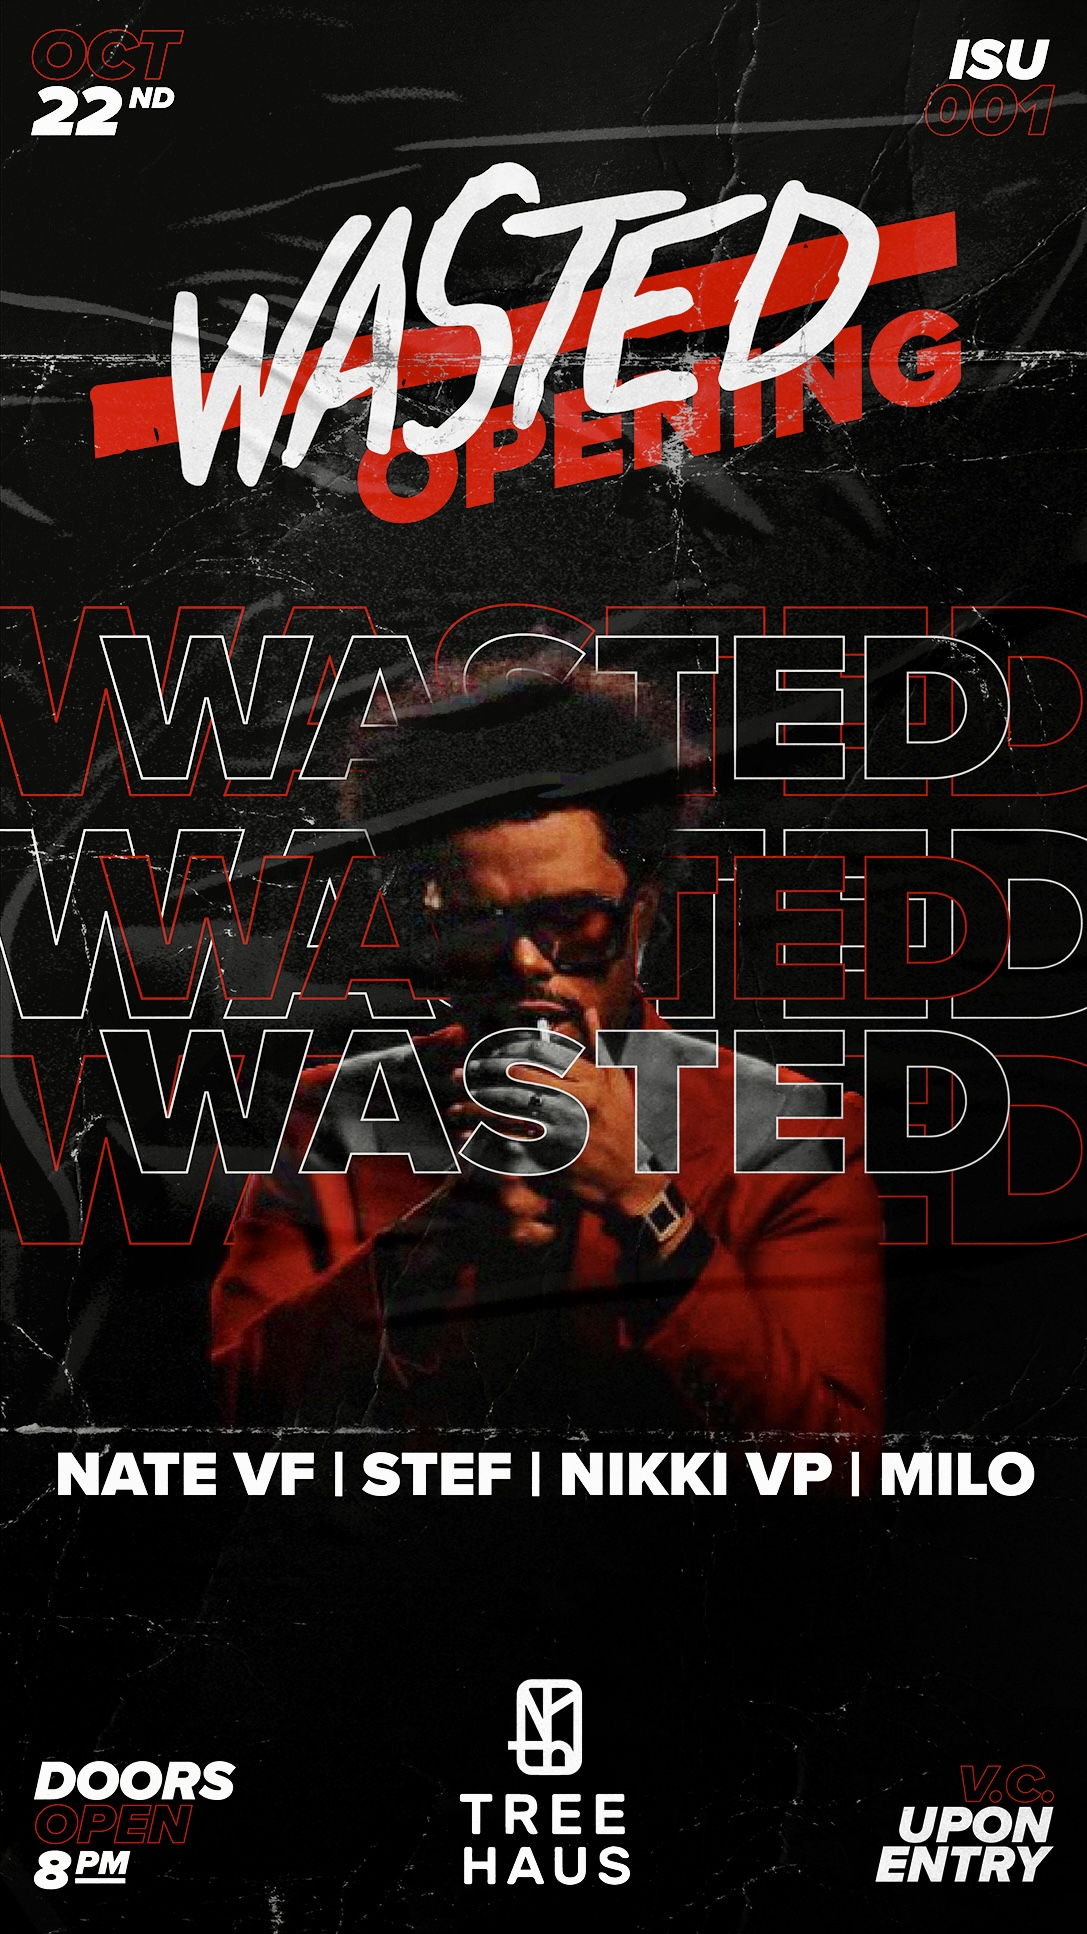 Wasted .:. The Opening poster